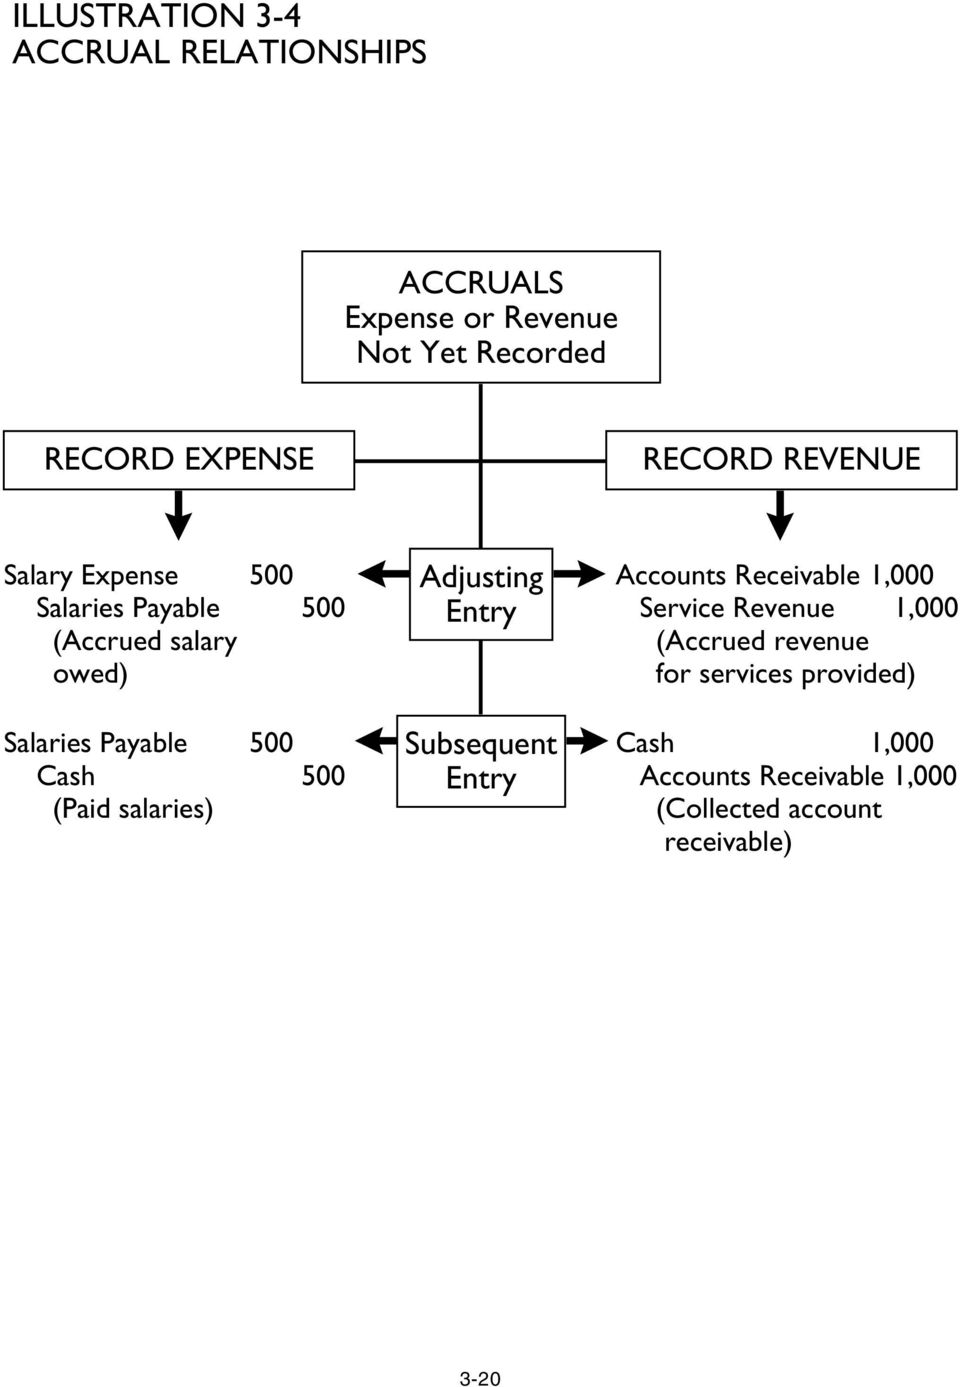 Accounts Receivable 1,000 Service Revenue 1,000 (Accrued revenue for services provided)